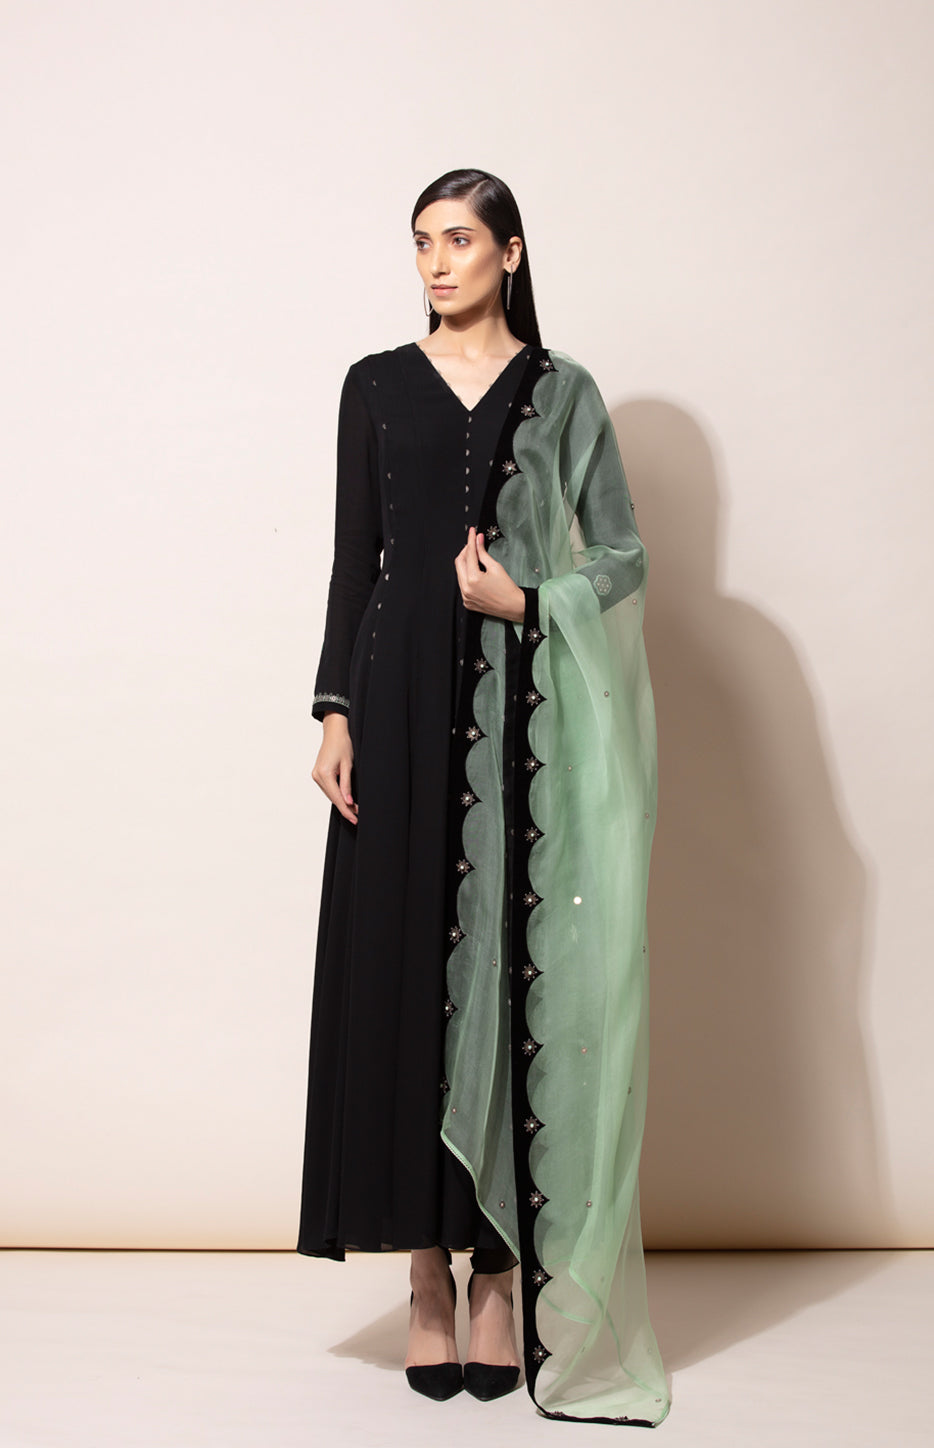 Black Anarkali with a twist of Dhoti Pants and paired with a Neon Green Dupatta